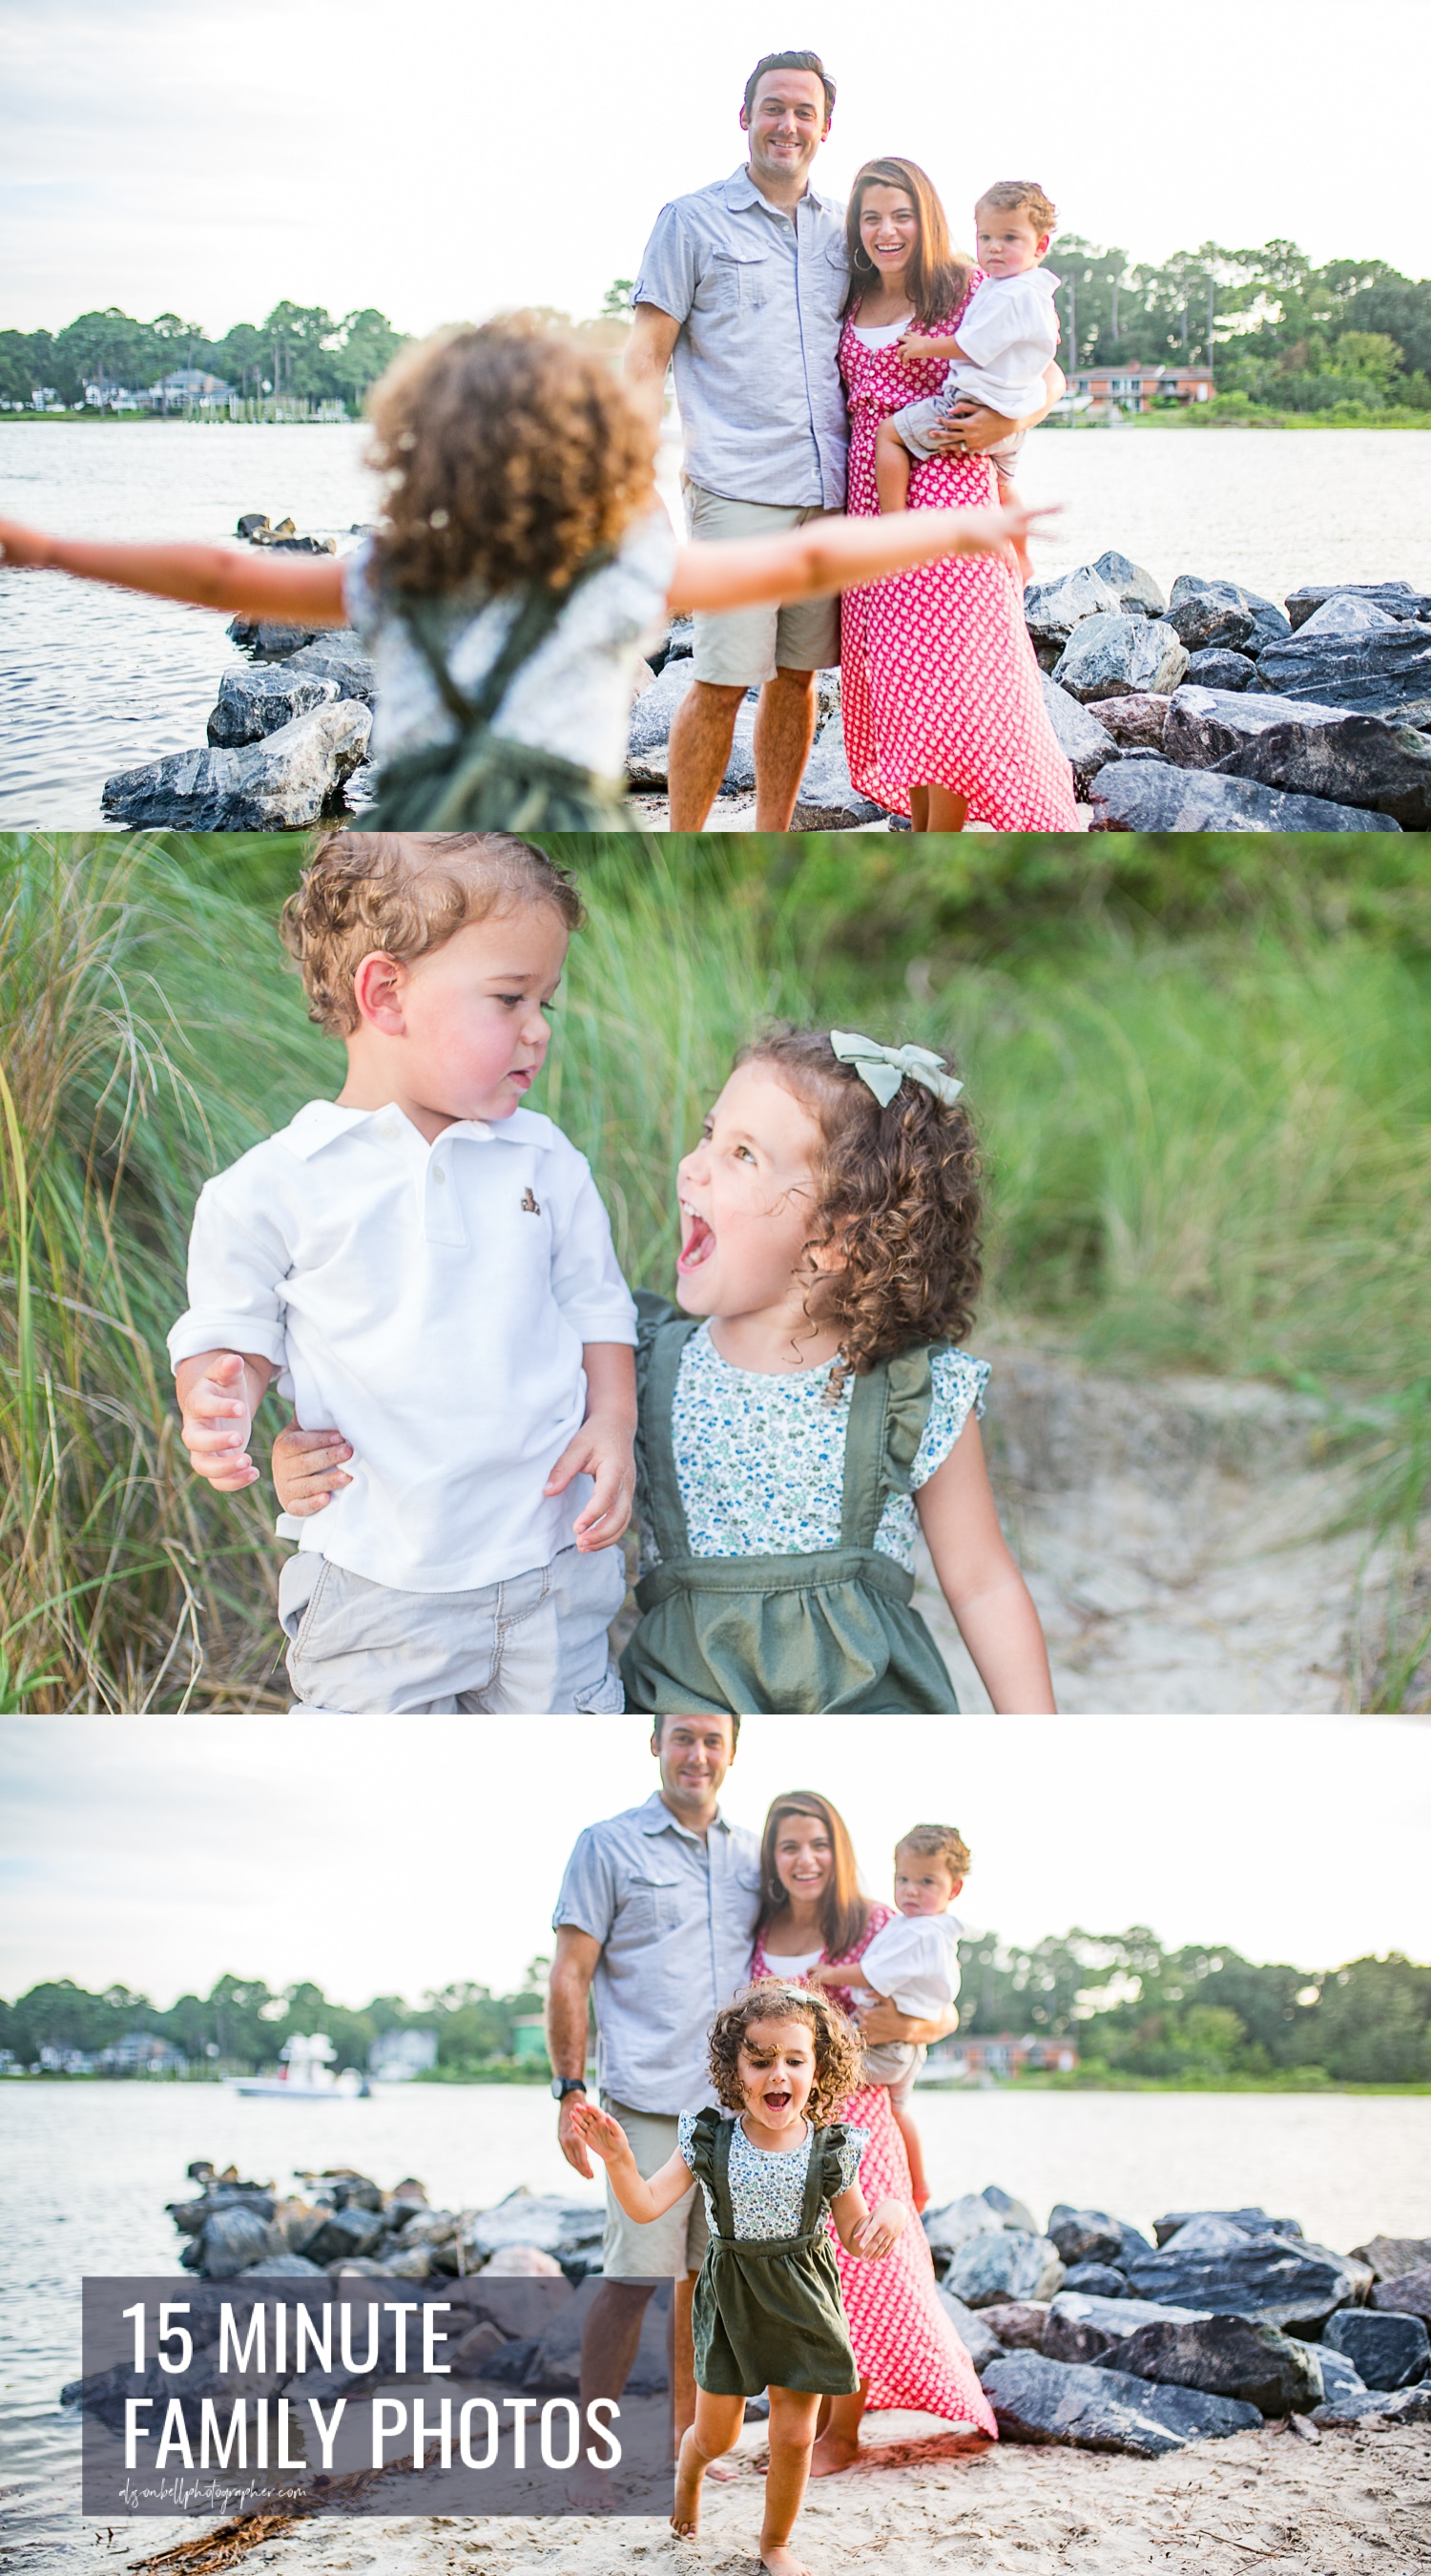 Family mini sessions at first landing state park The Narrows by Alison bell, Photographer alisonbellphotographer.com